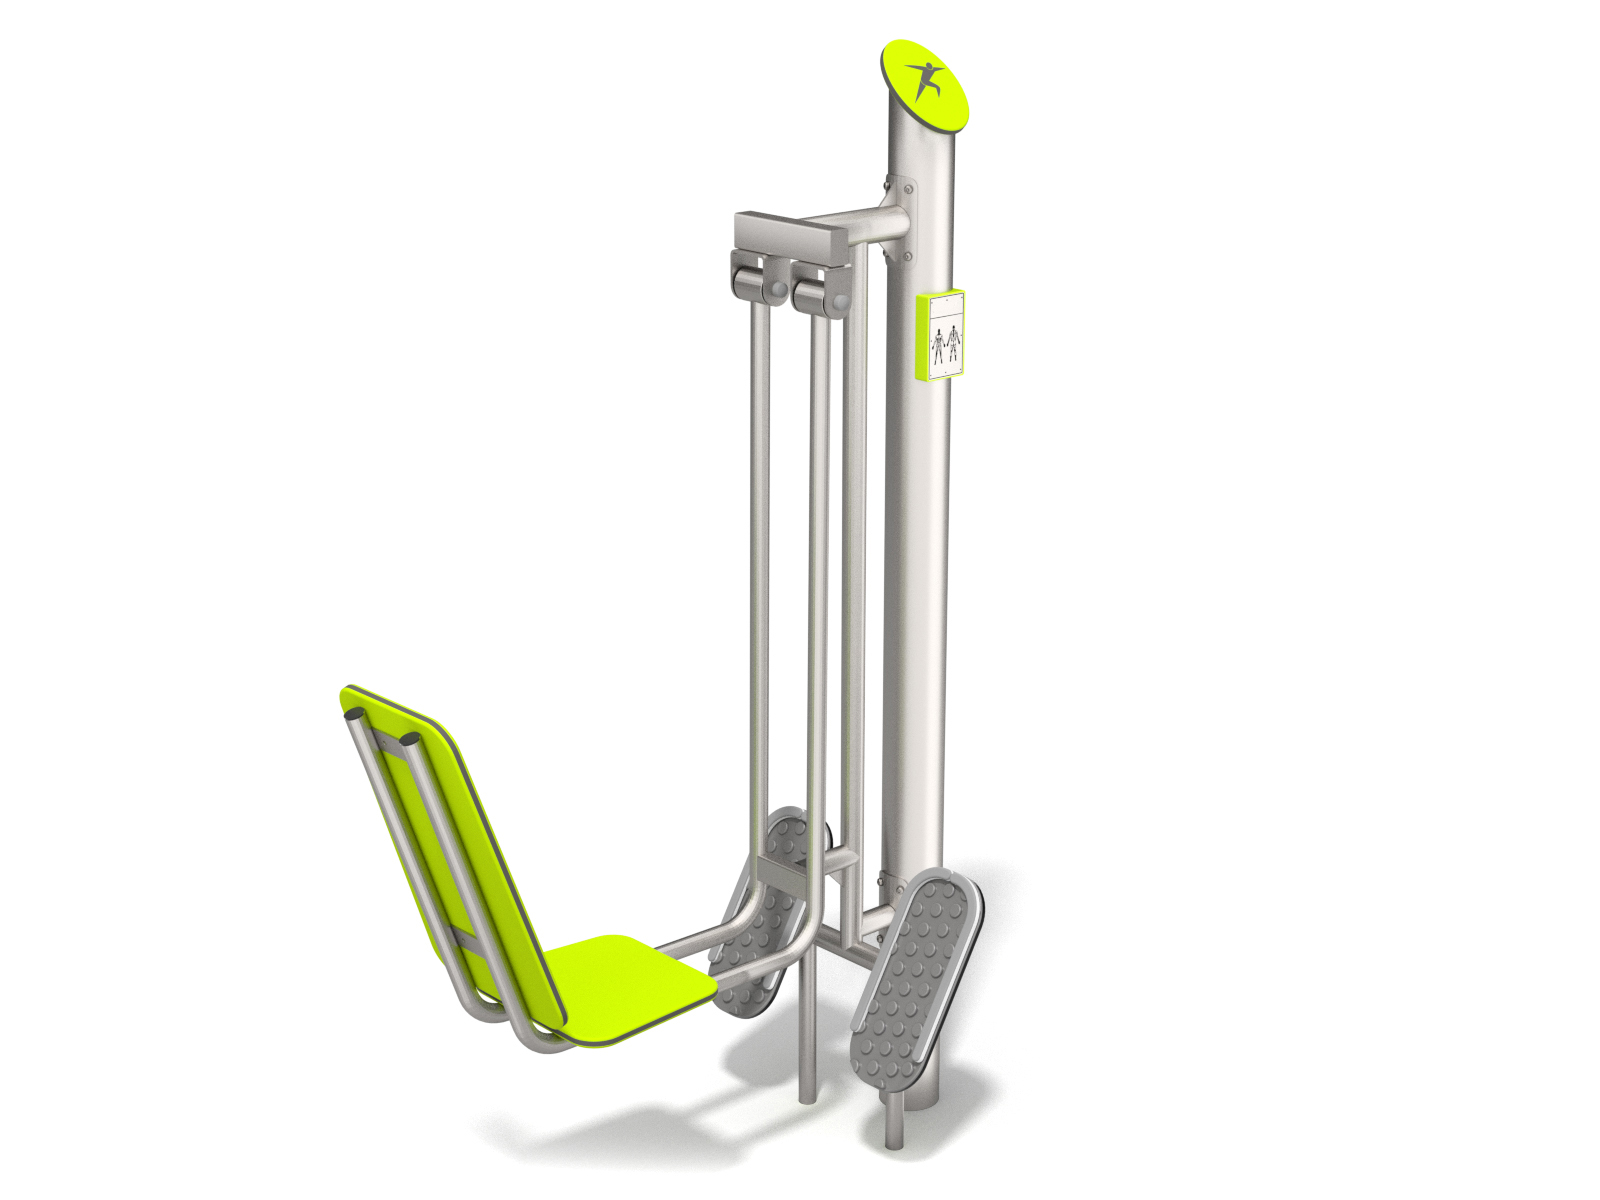 Stainless steel leg press for outdoor gyms